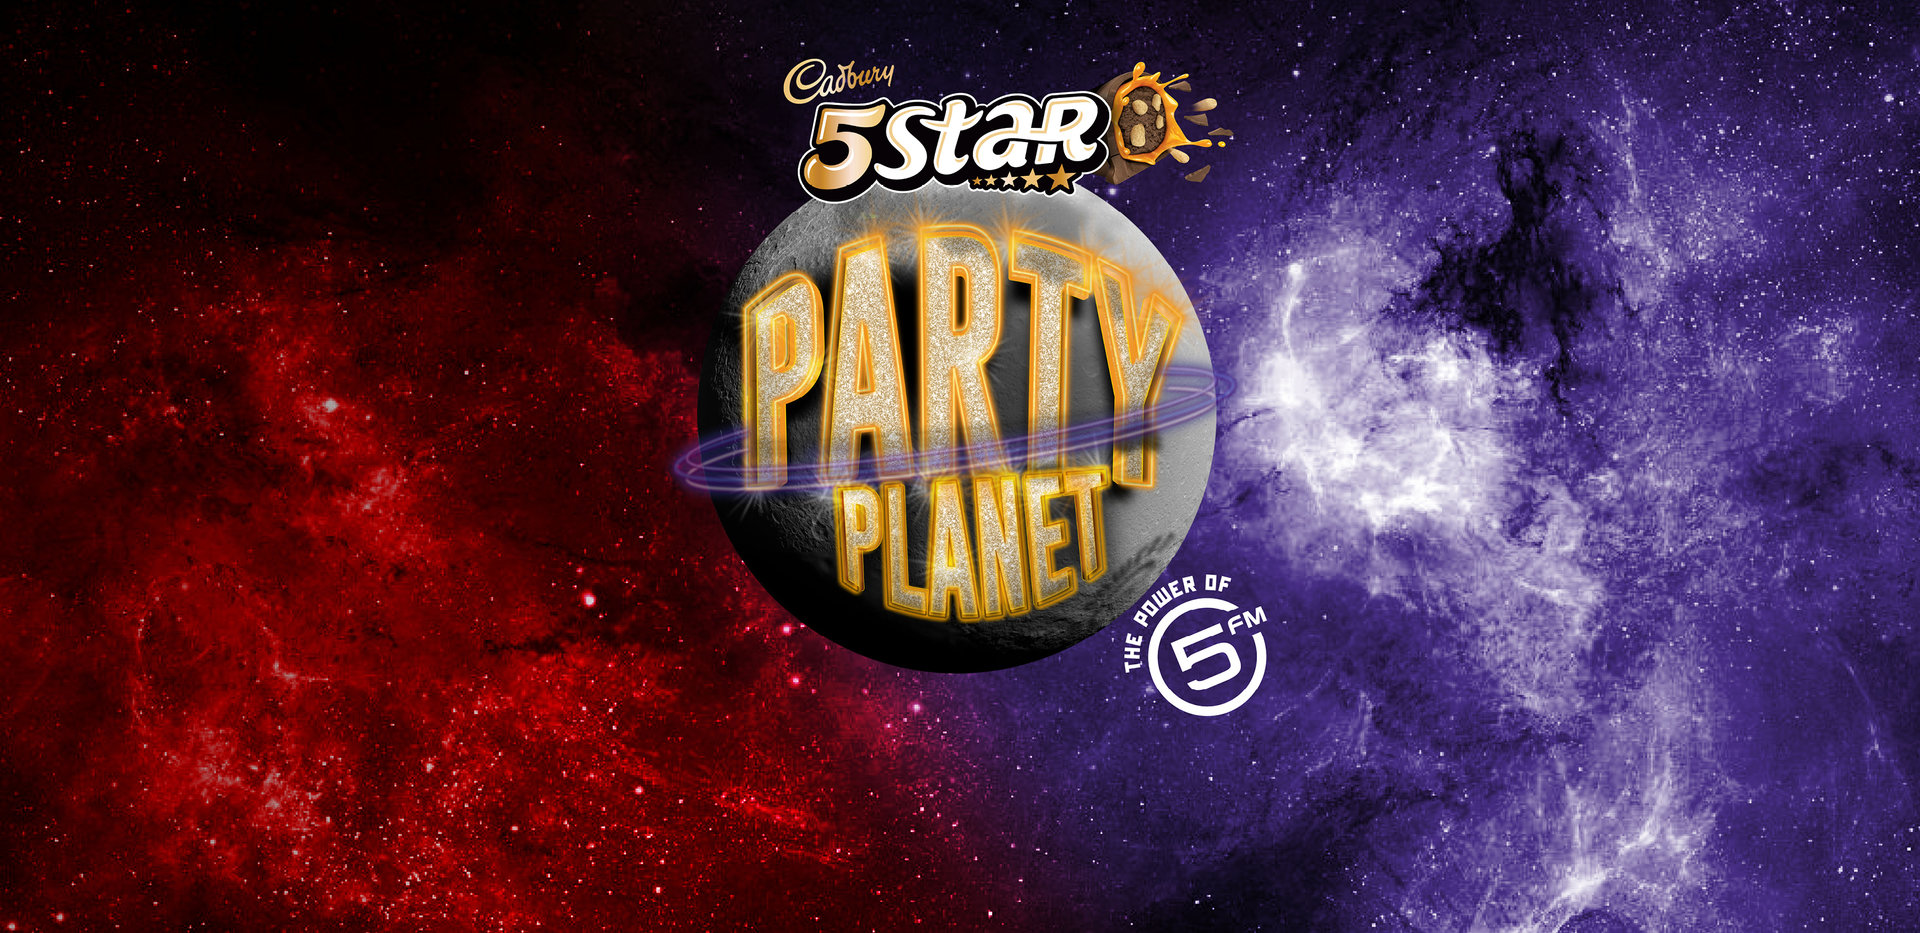 Get lost in the taste, get lost in the experience with Cadbury 5Star Party Planet powered by 5FM.